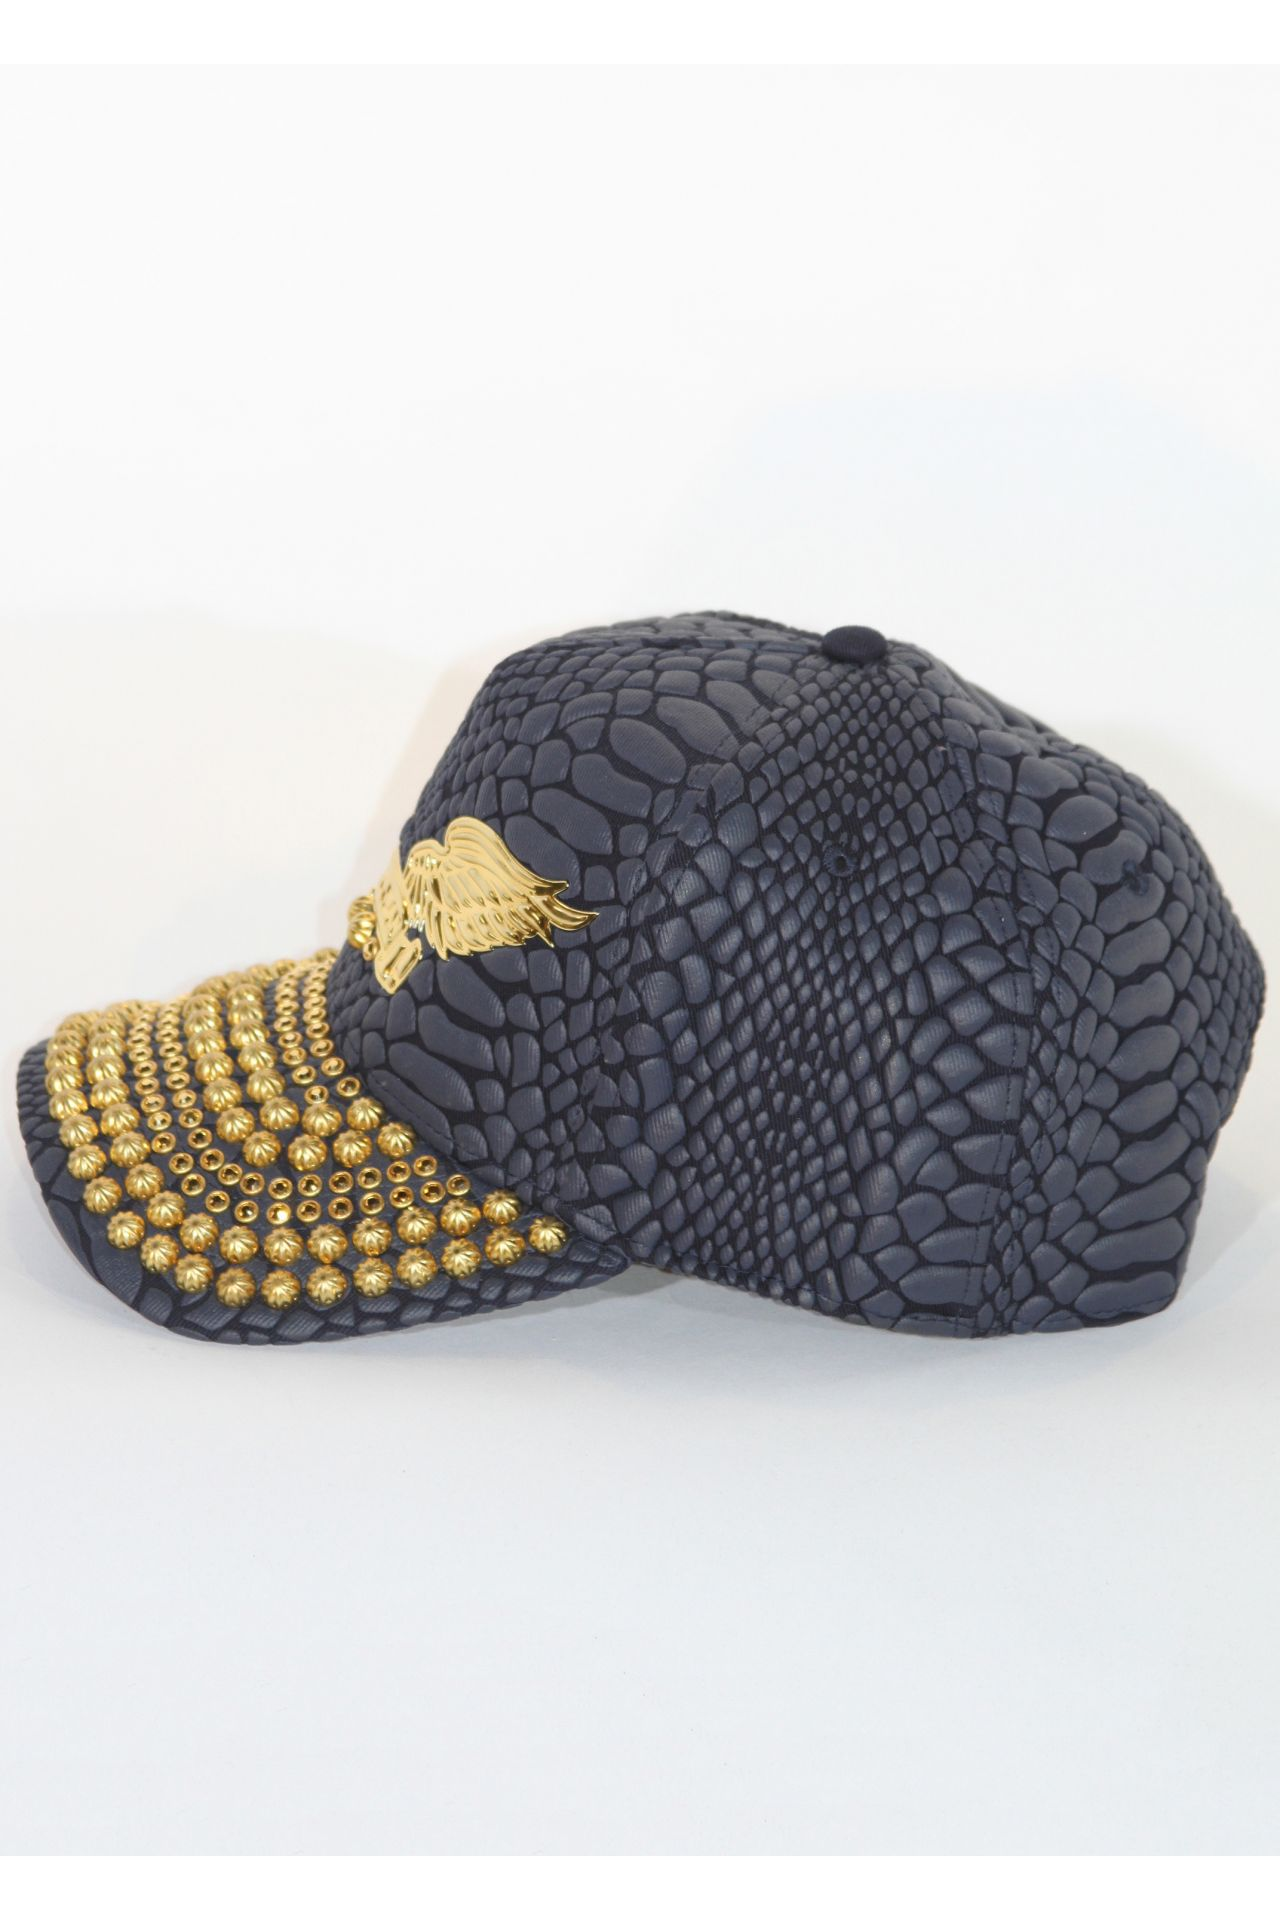 CRACKLE HAT IN NAVY WITH GOLD SW AND PARACHUTES